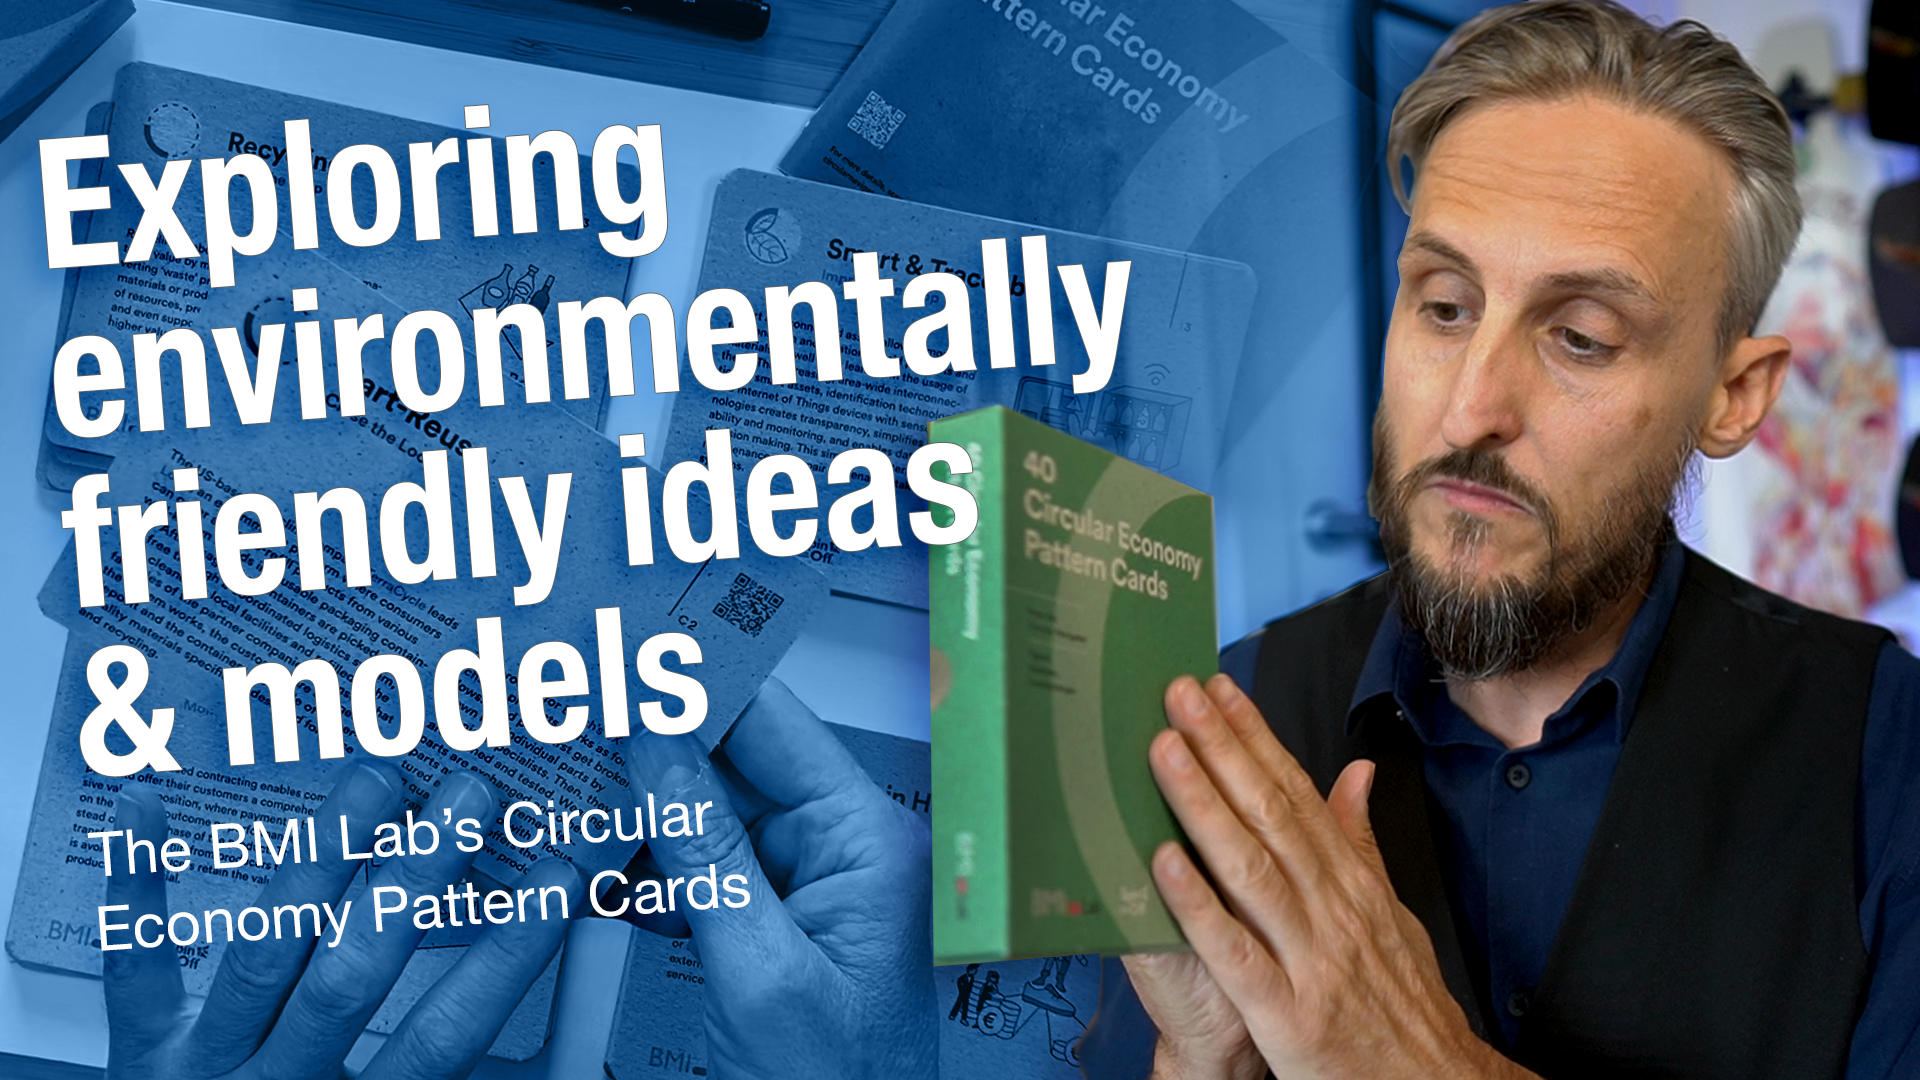 The Circular Economy Pattern Cards: Exploring models & ideas friendly to our Environment